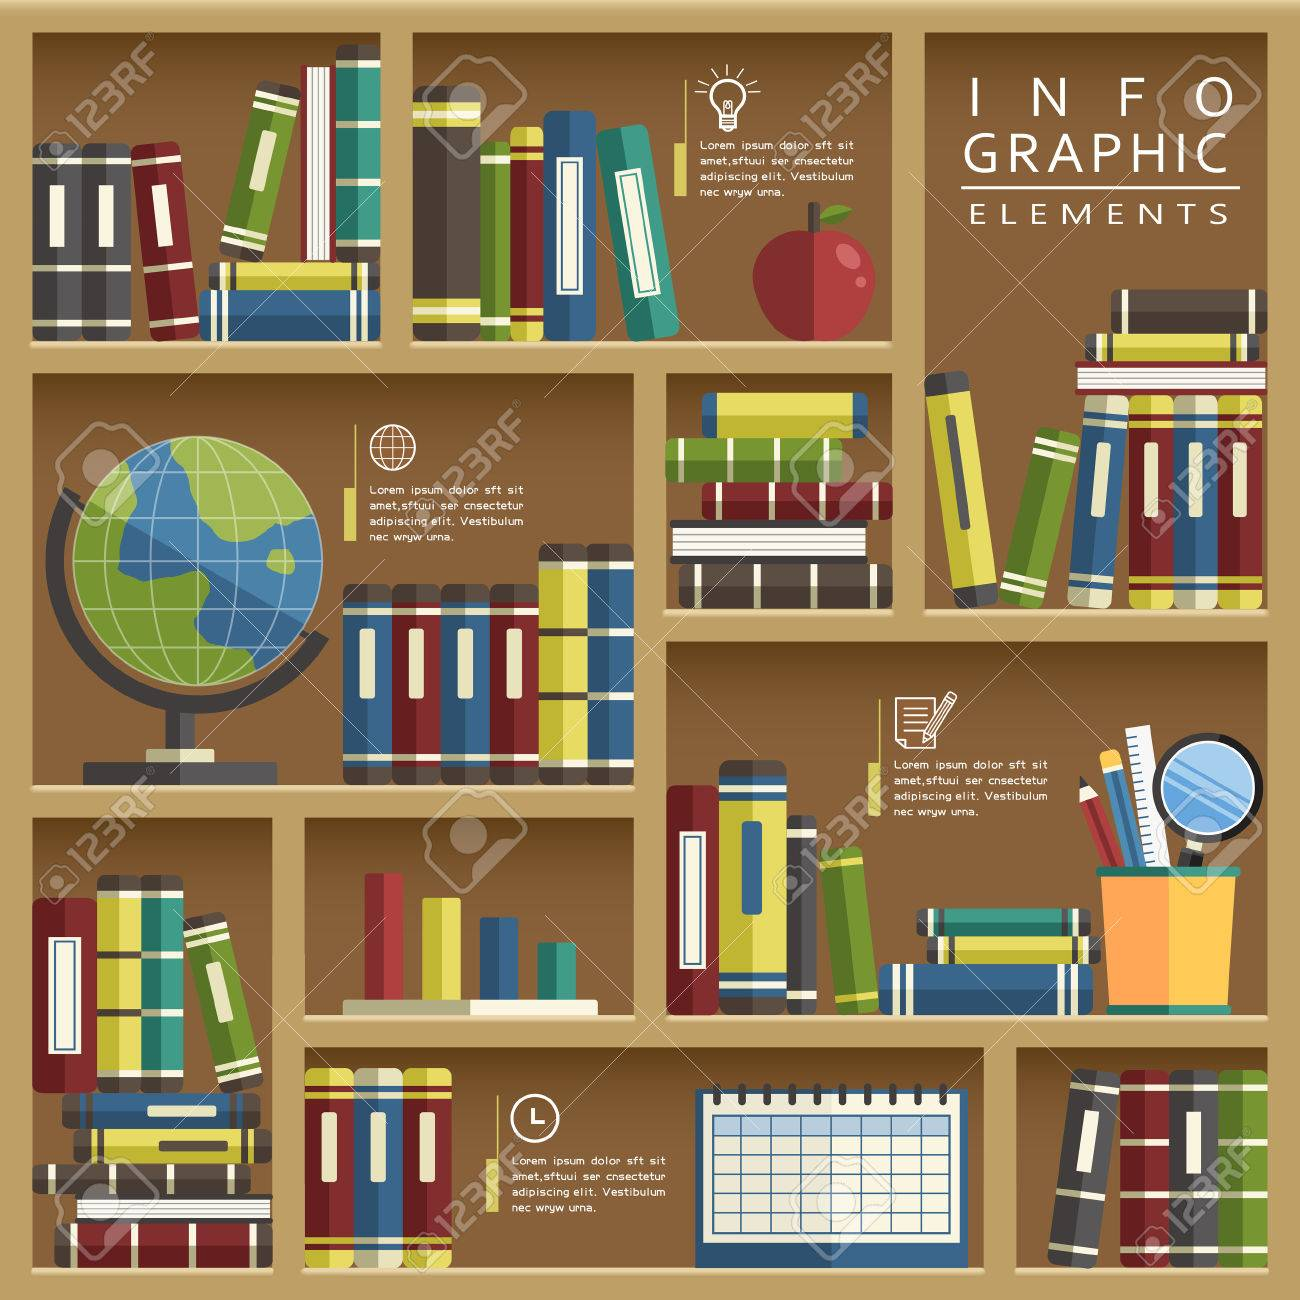 Education Infographic Template Design With Books And Bookshelf Stock Vector